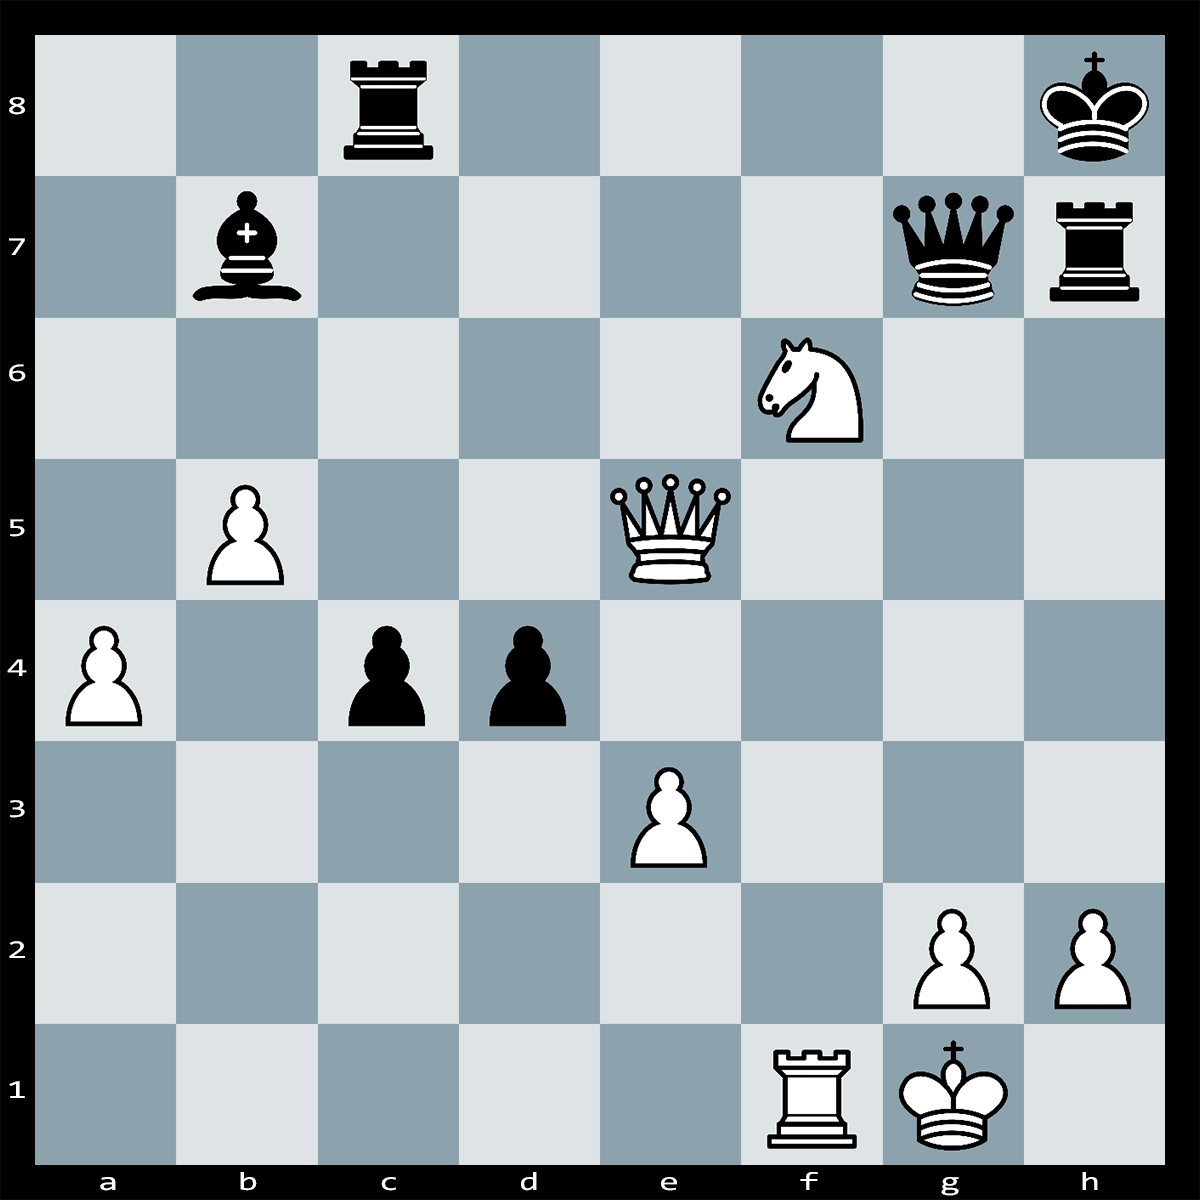 White has a powerful move, which wins a piece, Can you spot it?